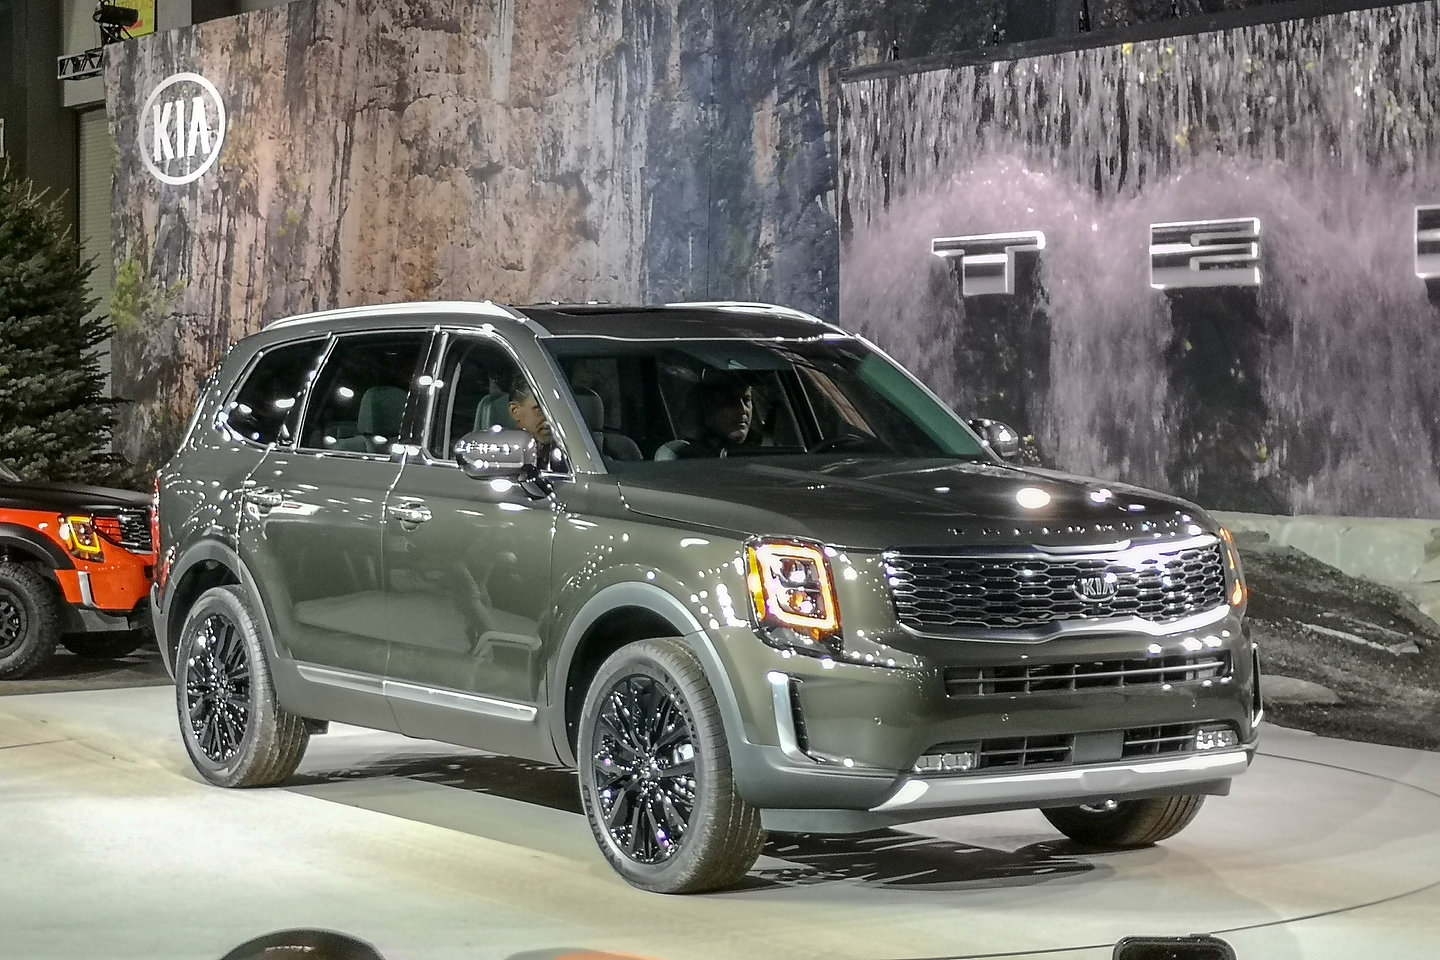 5 Questions About The New 2020 Kia Telluride Answered